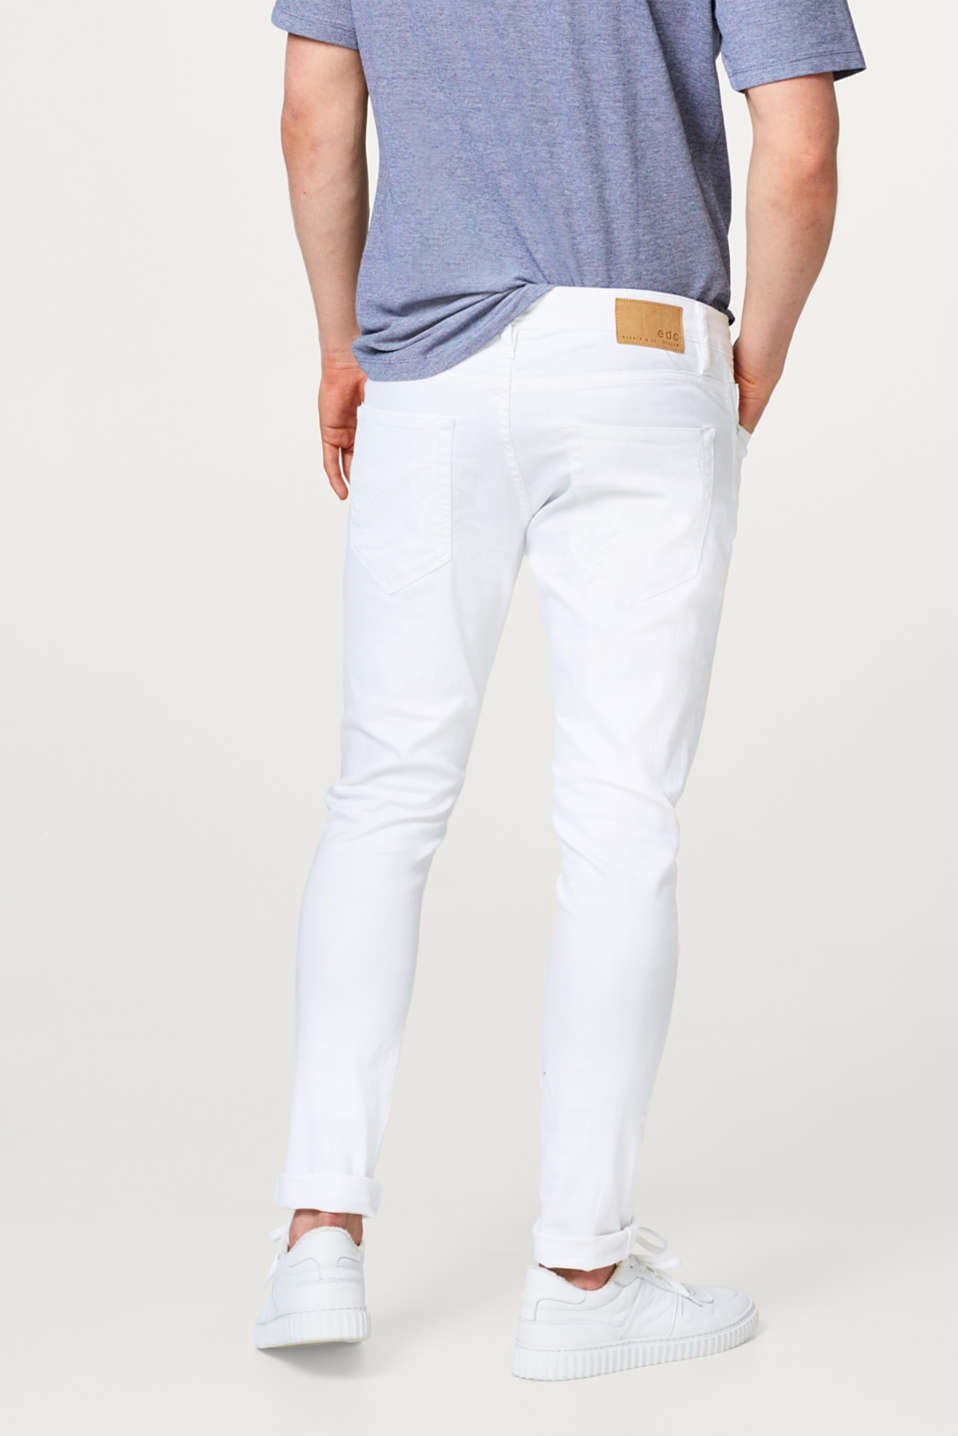 Witte stretchjeans met destroyed effect